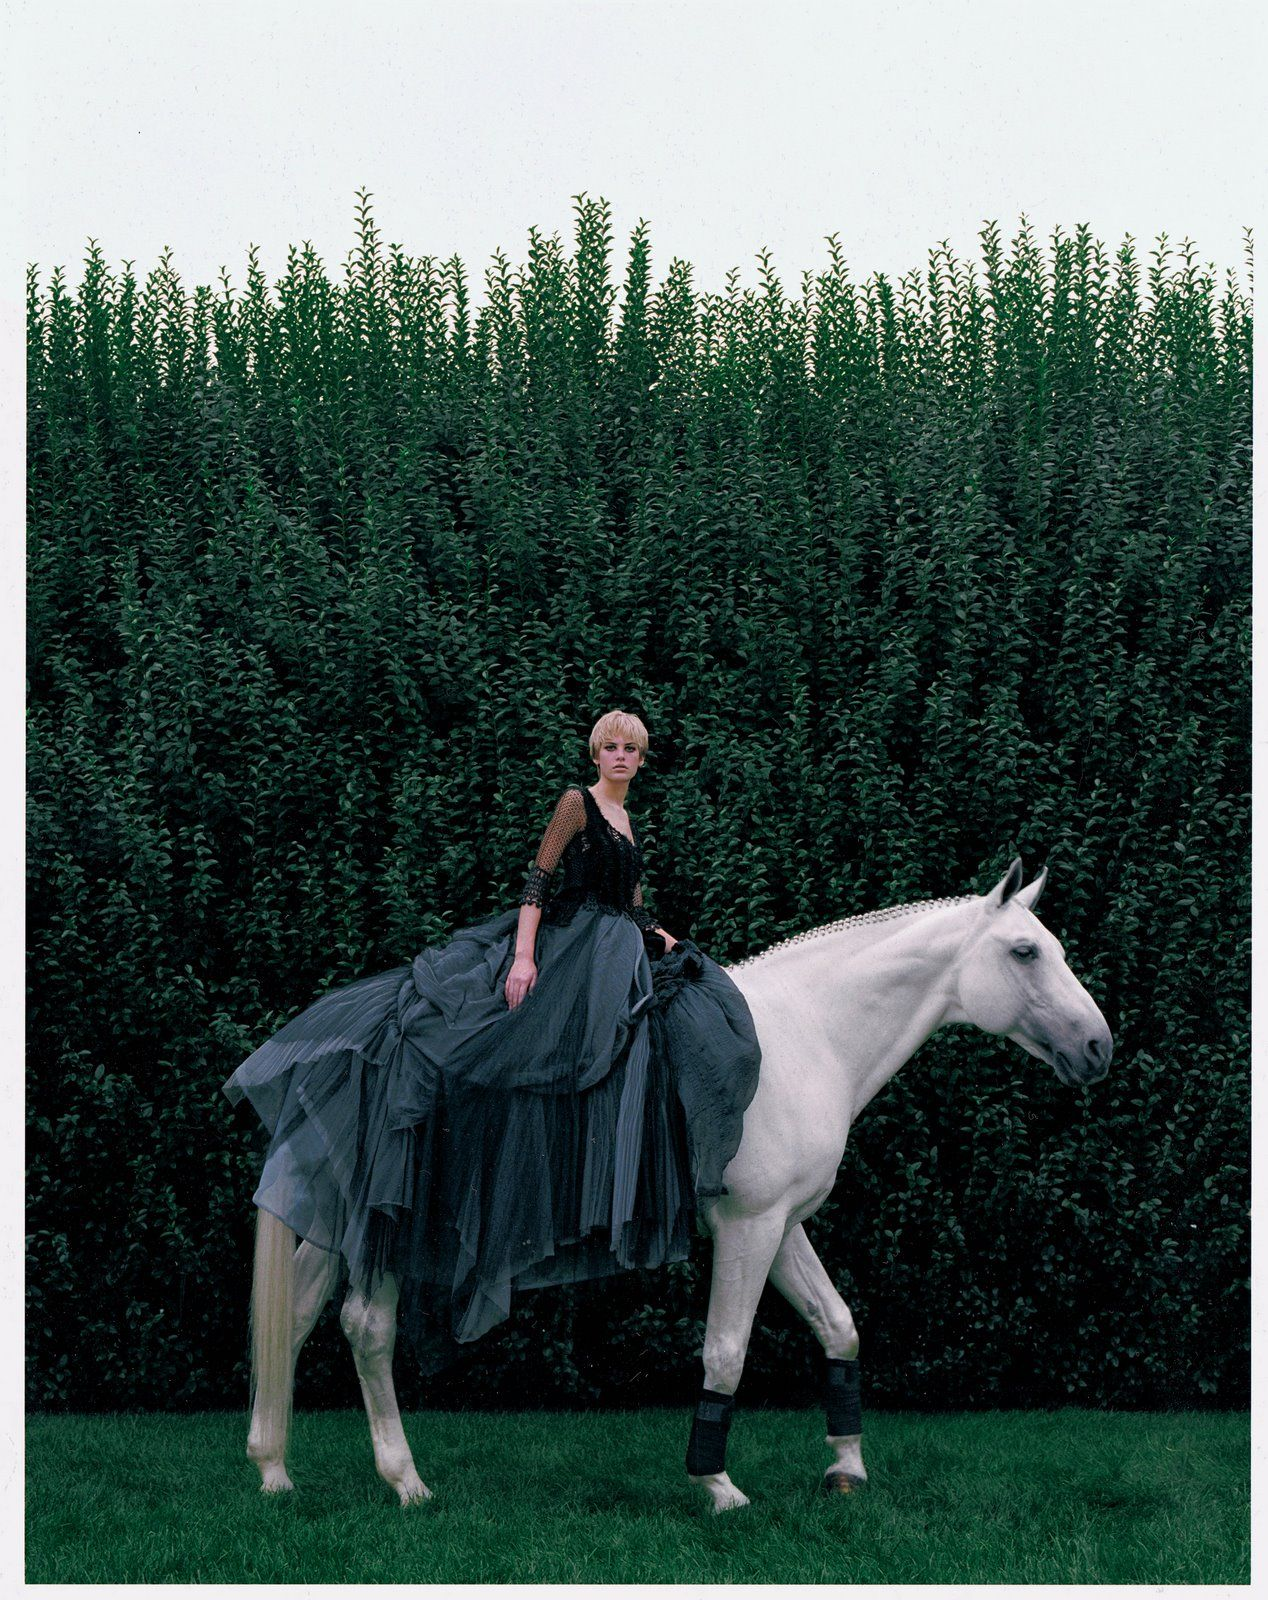 Who doesnut wear a ballgown to ride horseback back in the saddle